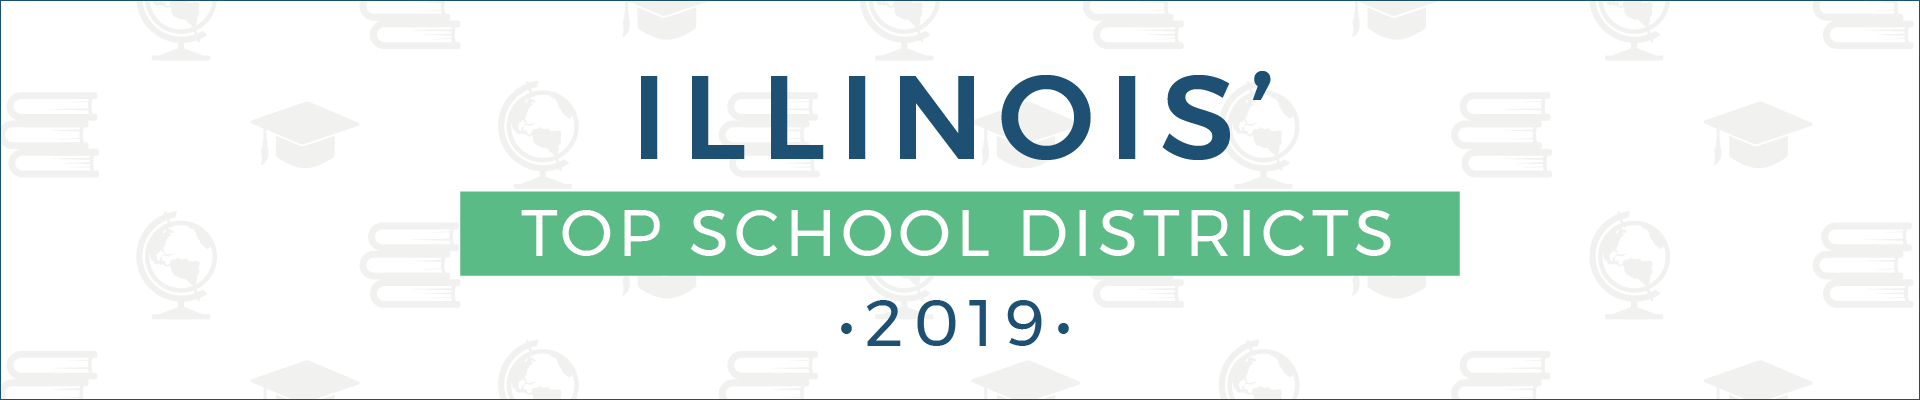 top school districts, 2019 - illinois - banner